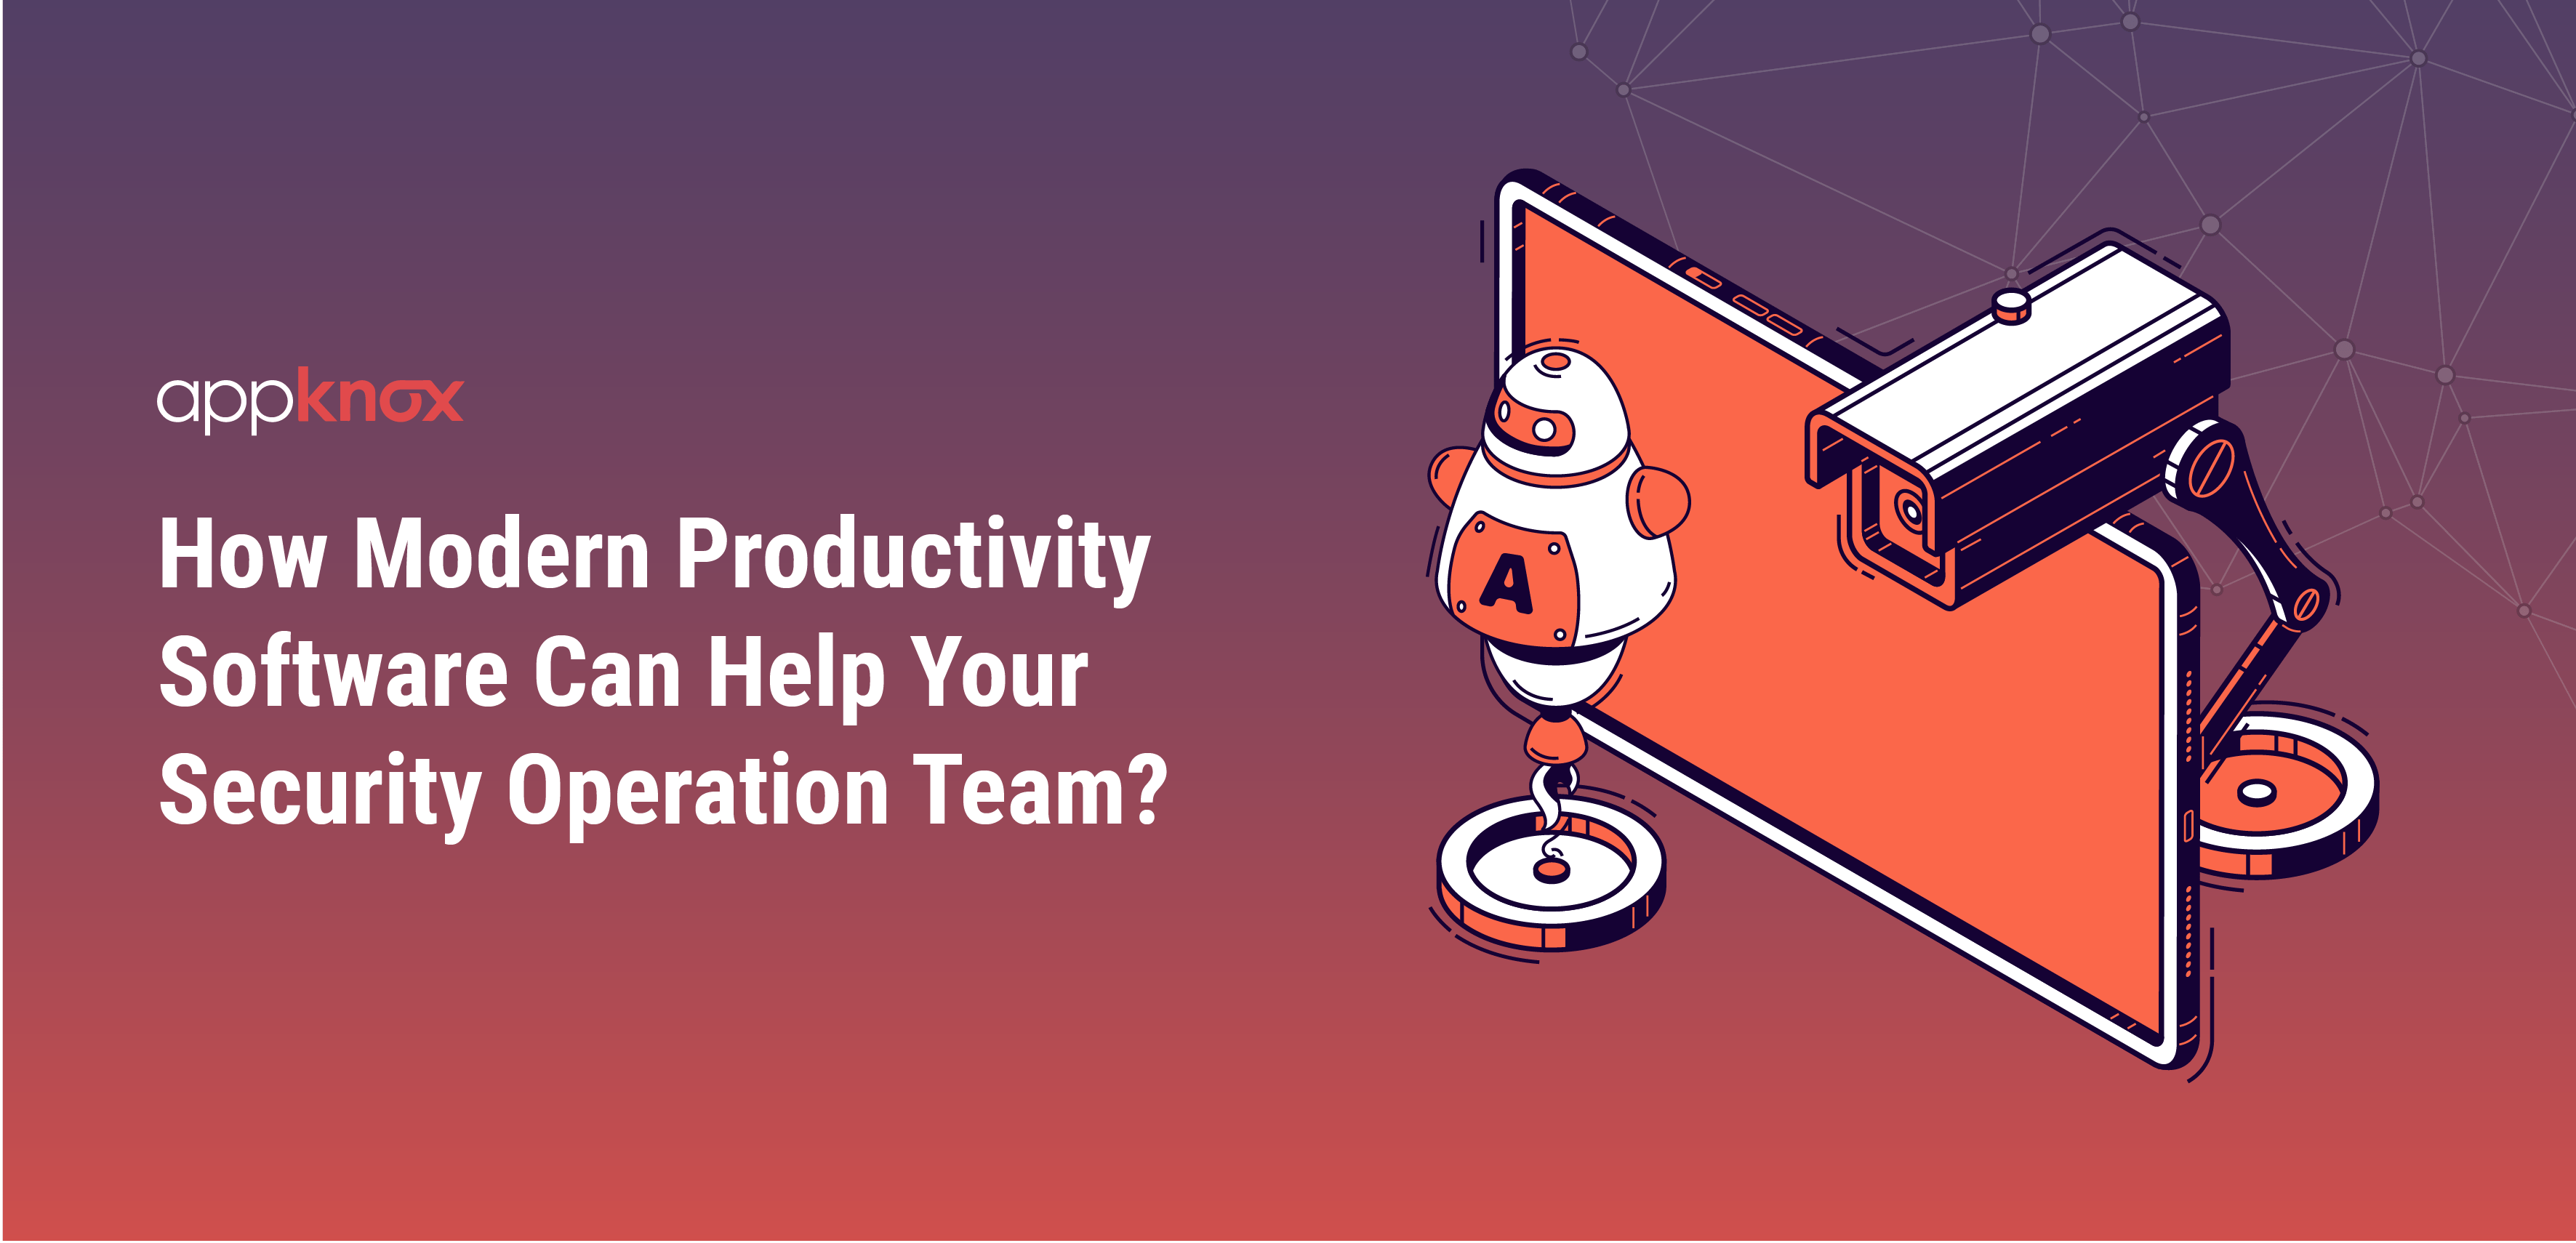 How Modern Productivity Software Can Help Your Security Operation Team?